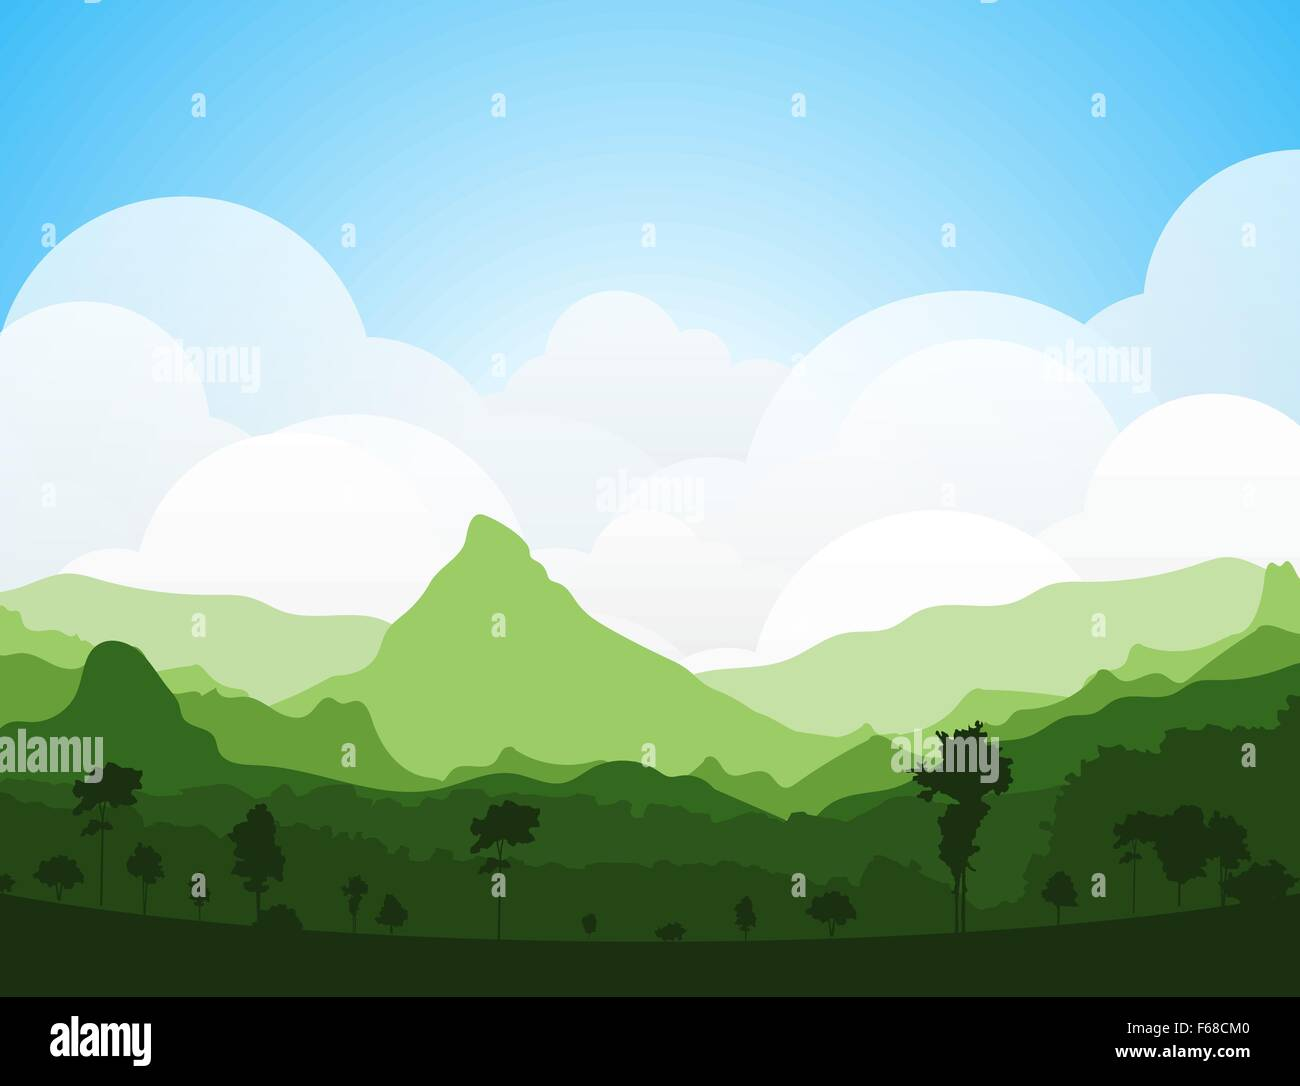 Colorful Silhouette Summer Landscape Background For Graphic Design Stock Vector Image Art Alamy